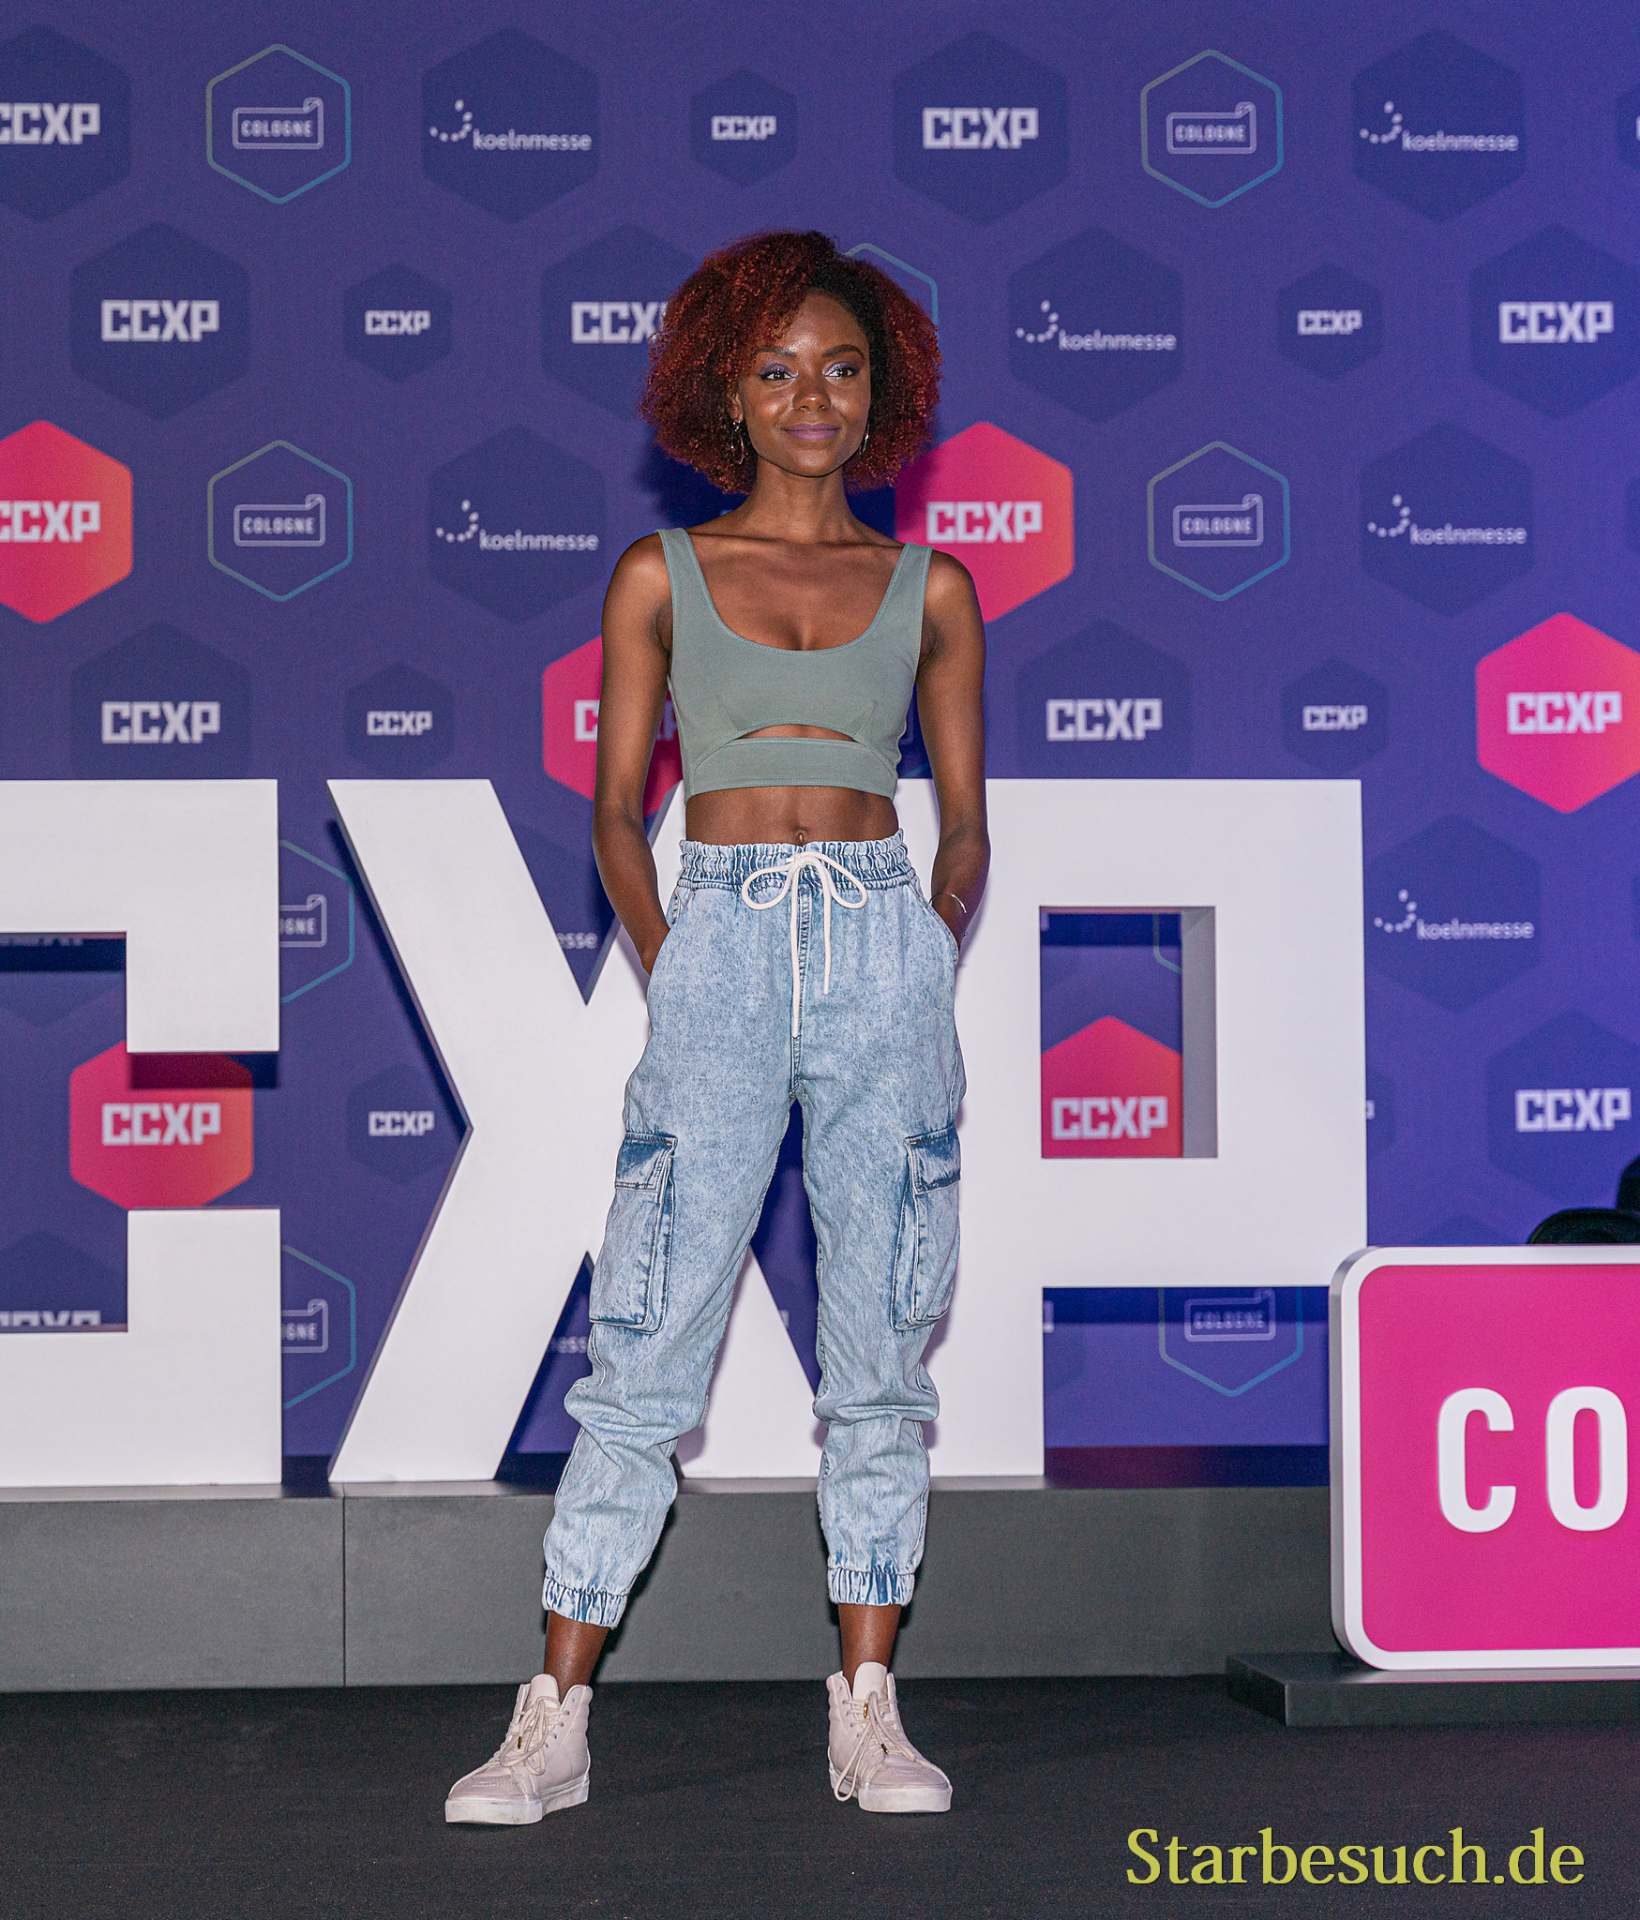 COLOGNE, GERMANY - JUN 28th 2019: Ashleigh Murray at CCXP Cologne